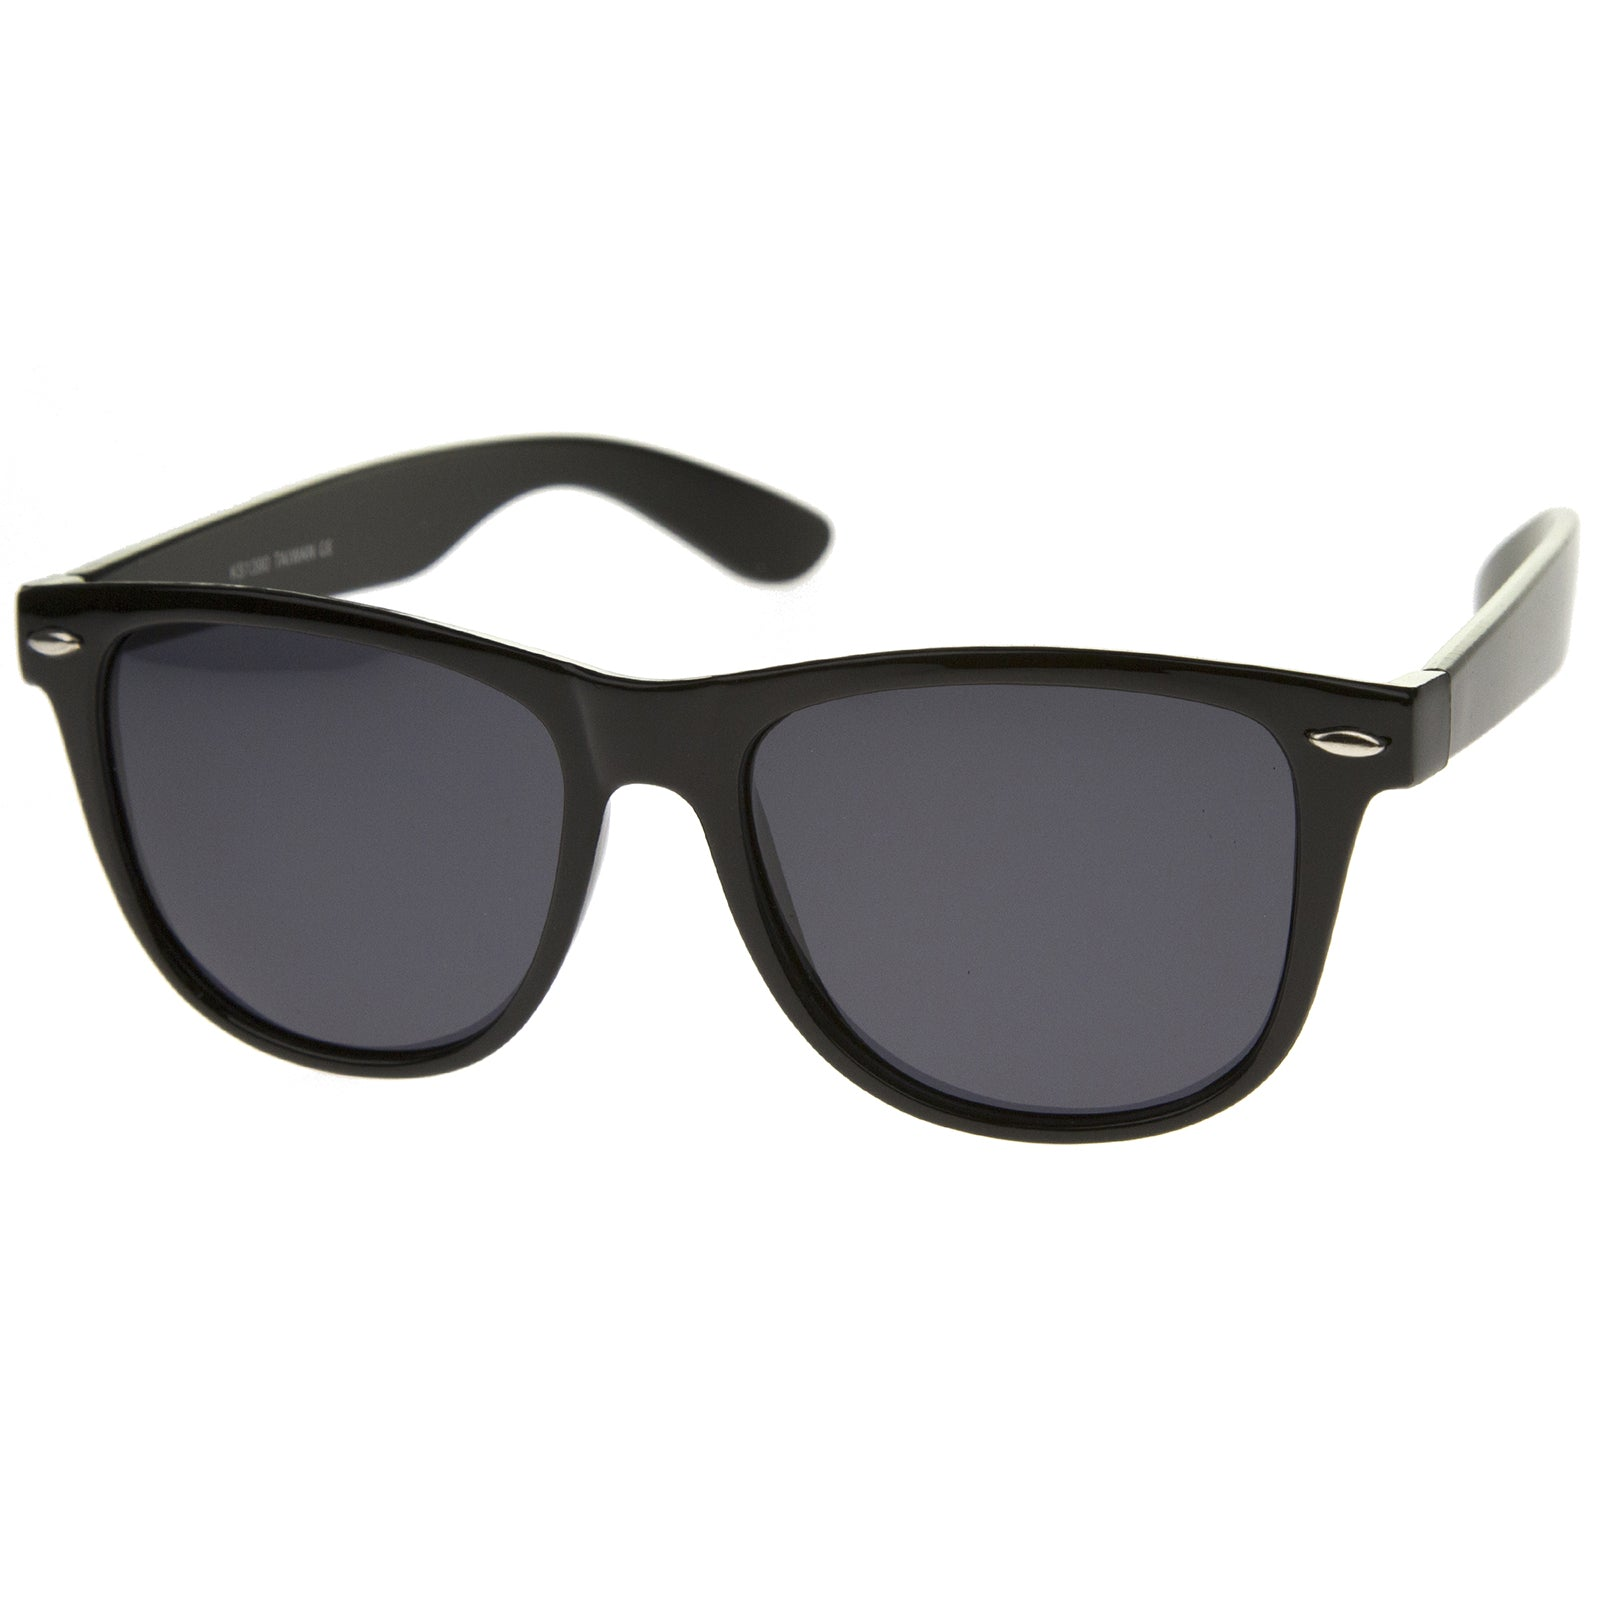 Large Oversize Classic Dark Tinted Lens Horn Rimmed Sunglasses 55mm - sunglass.la - 2